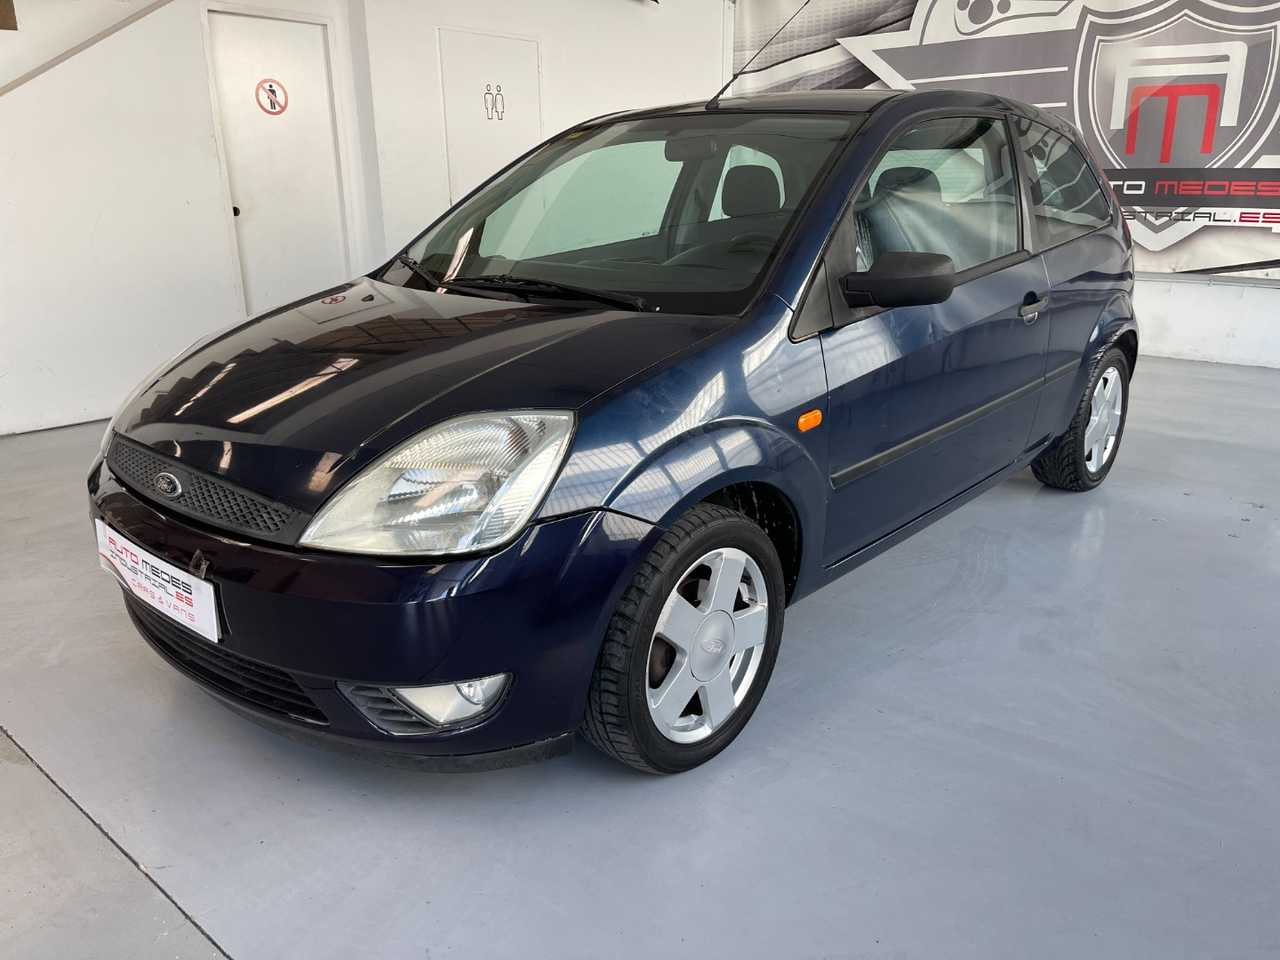 Ford Fiesta 1.4 Trend Coupe   - Foto 1